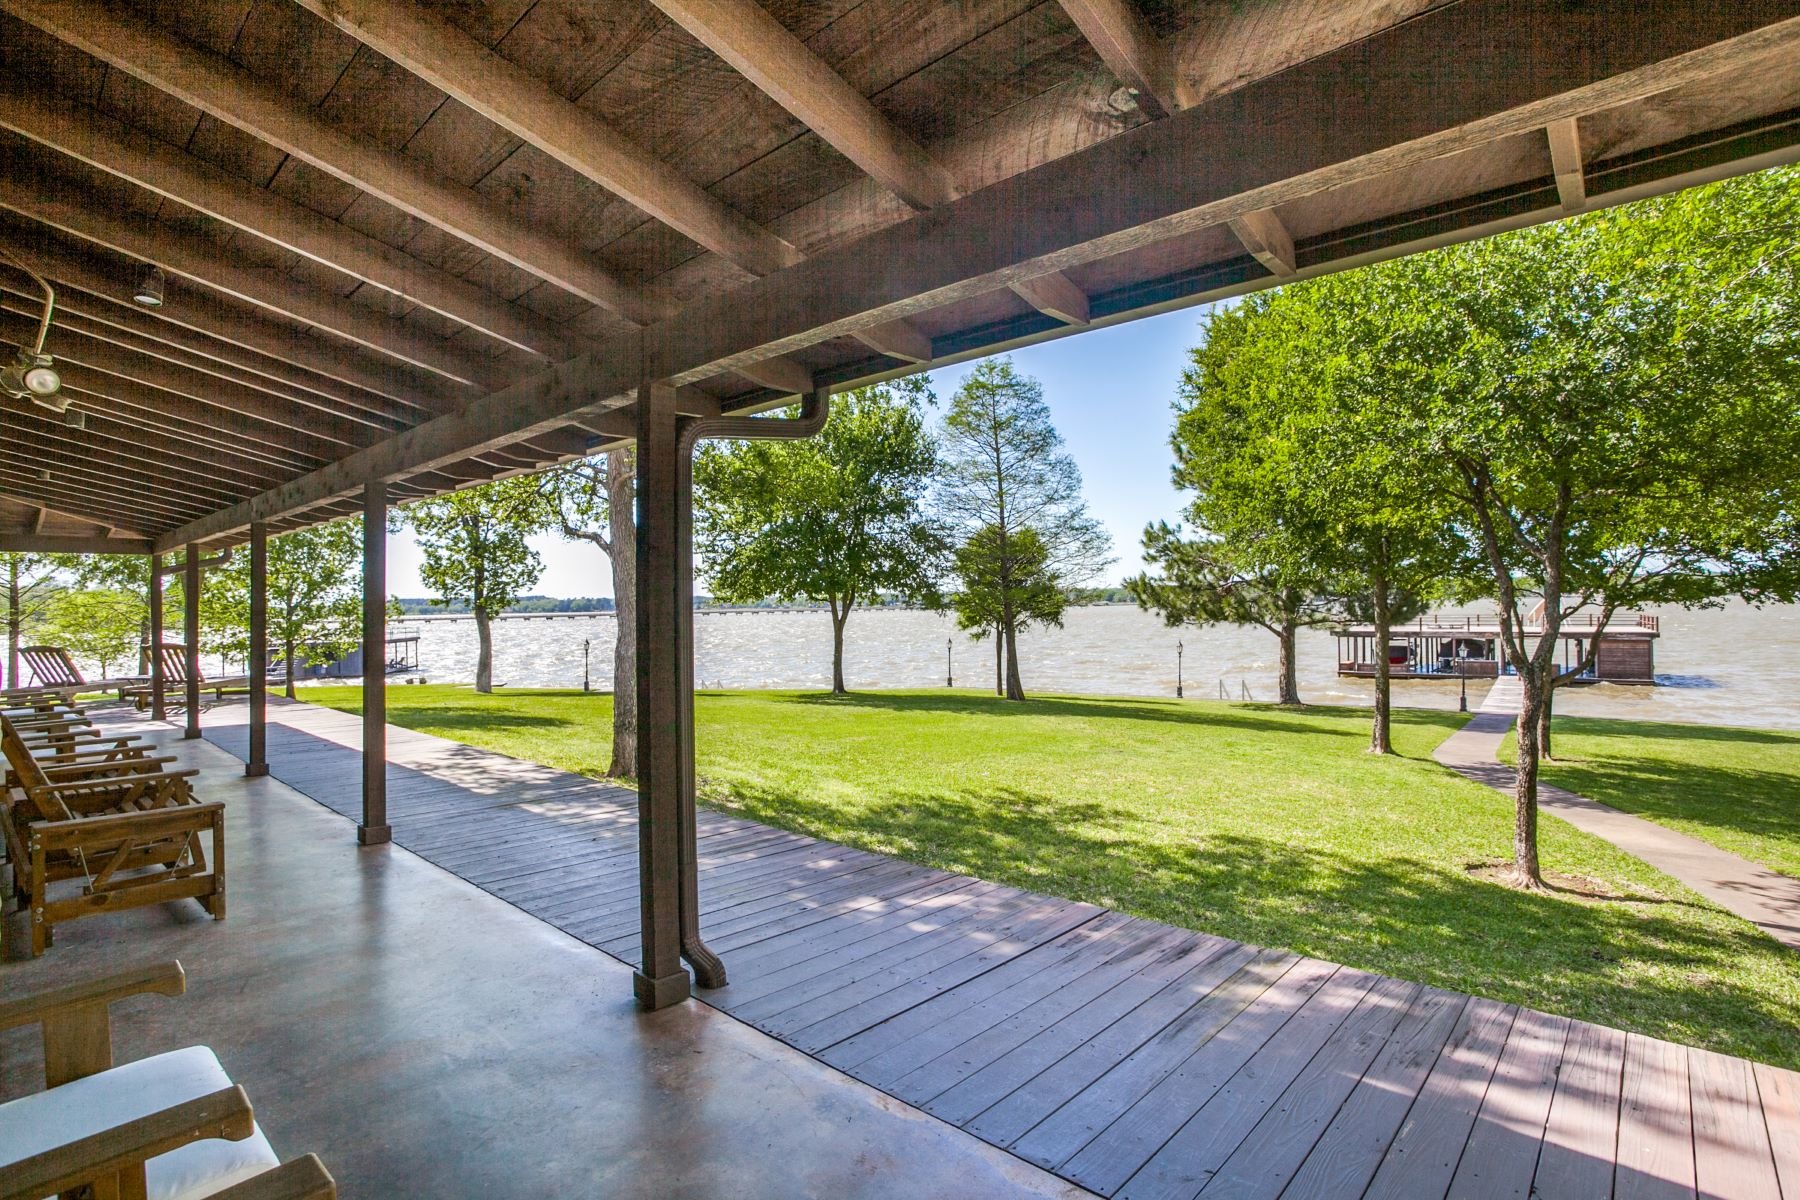 Single Family Homes for Sale at 5652 Lakeshore Court on Cedar Creek Lake 5652 Lakeshore Court Log Cabin, Texas 75148 United States